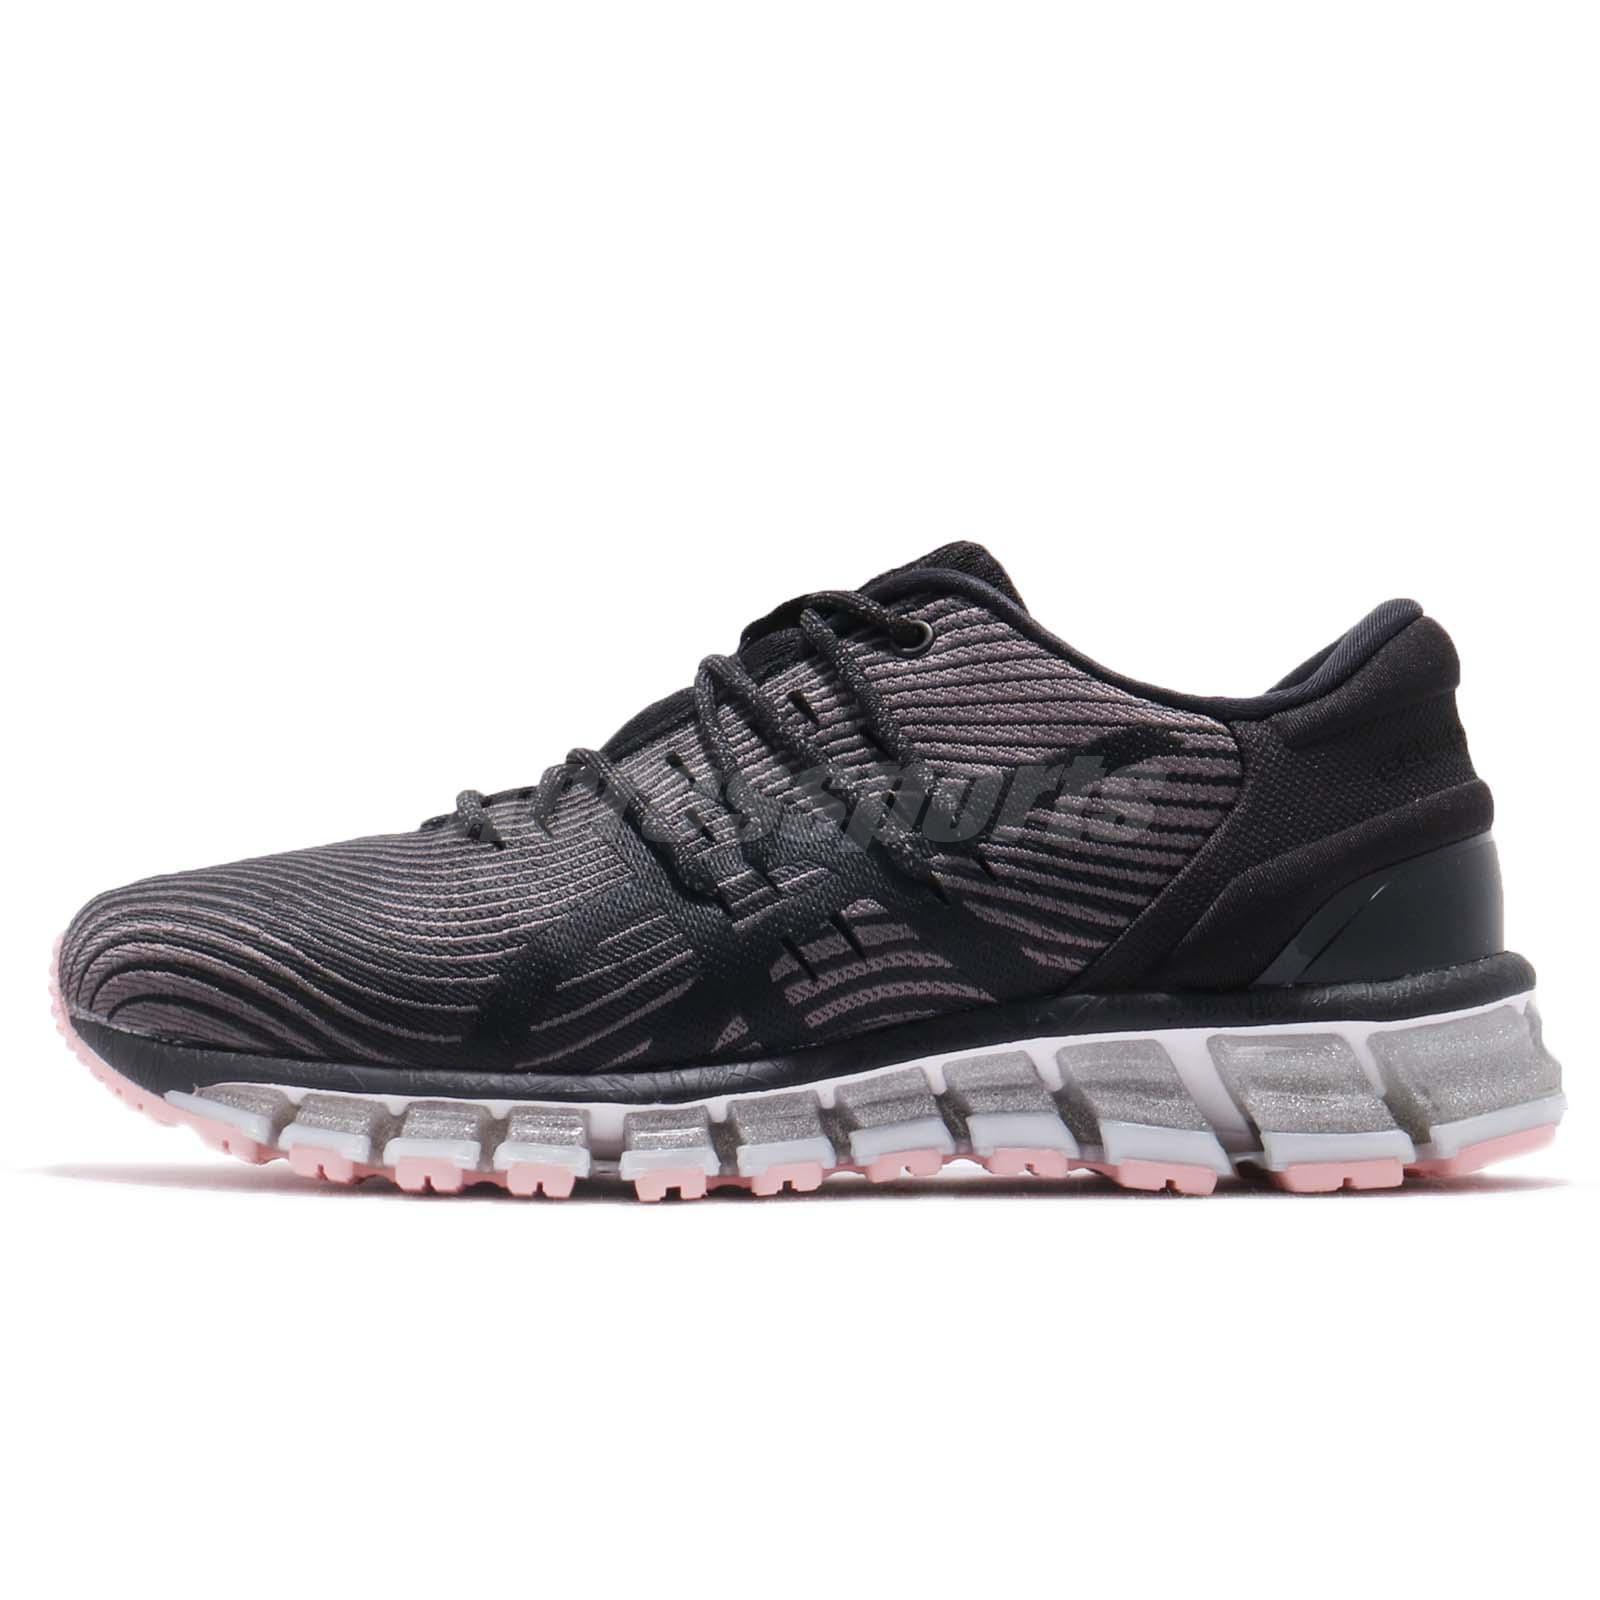 934a143ab3 ... greece asics gel quantum 360 4 carbon black pink women running shoes  1022a029 020 462a0 ca634